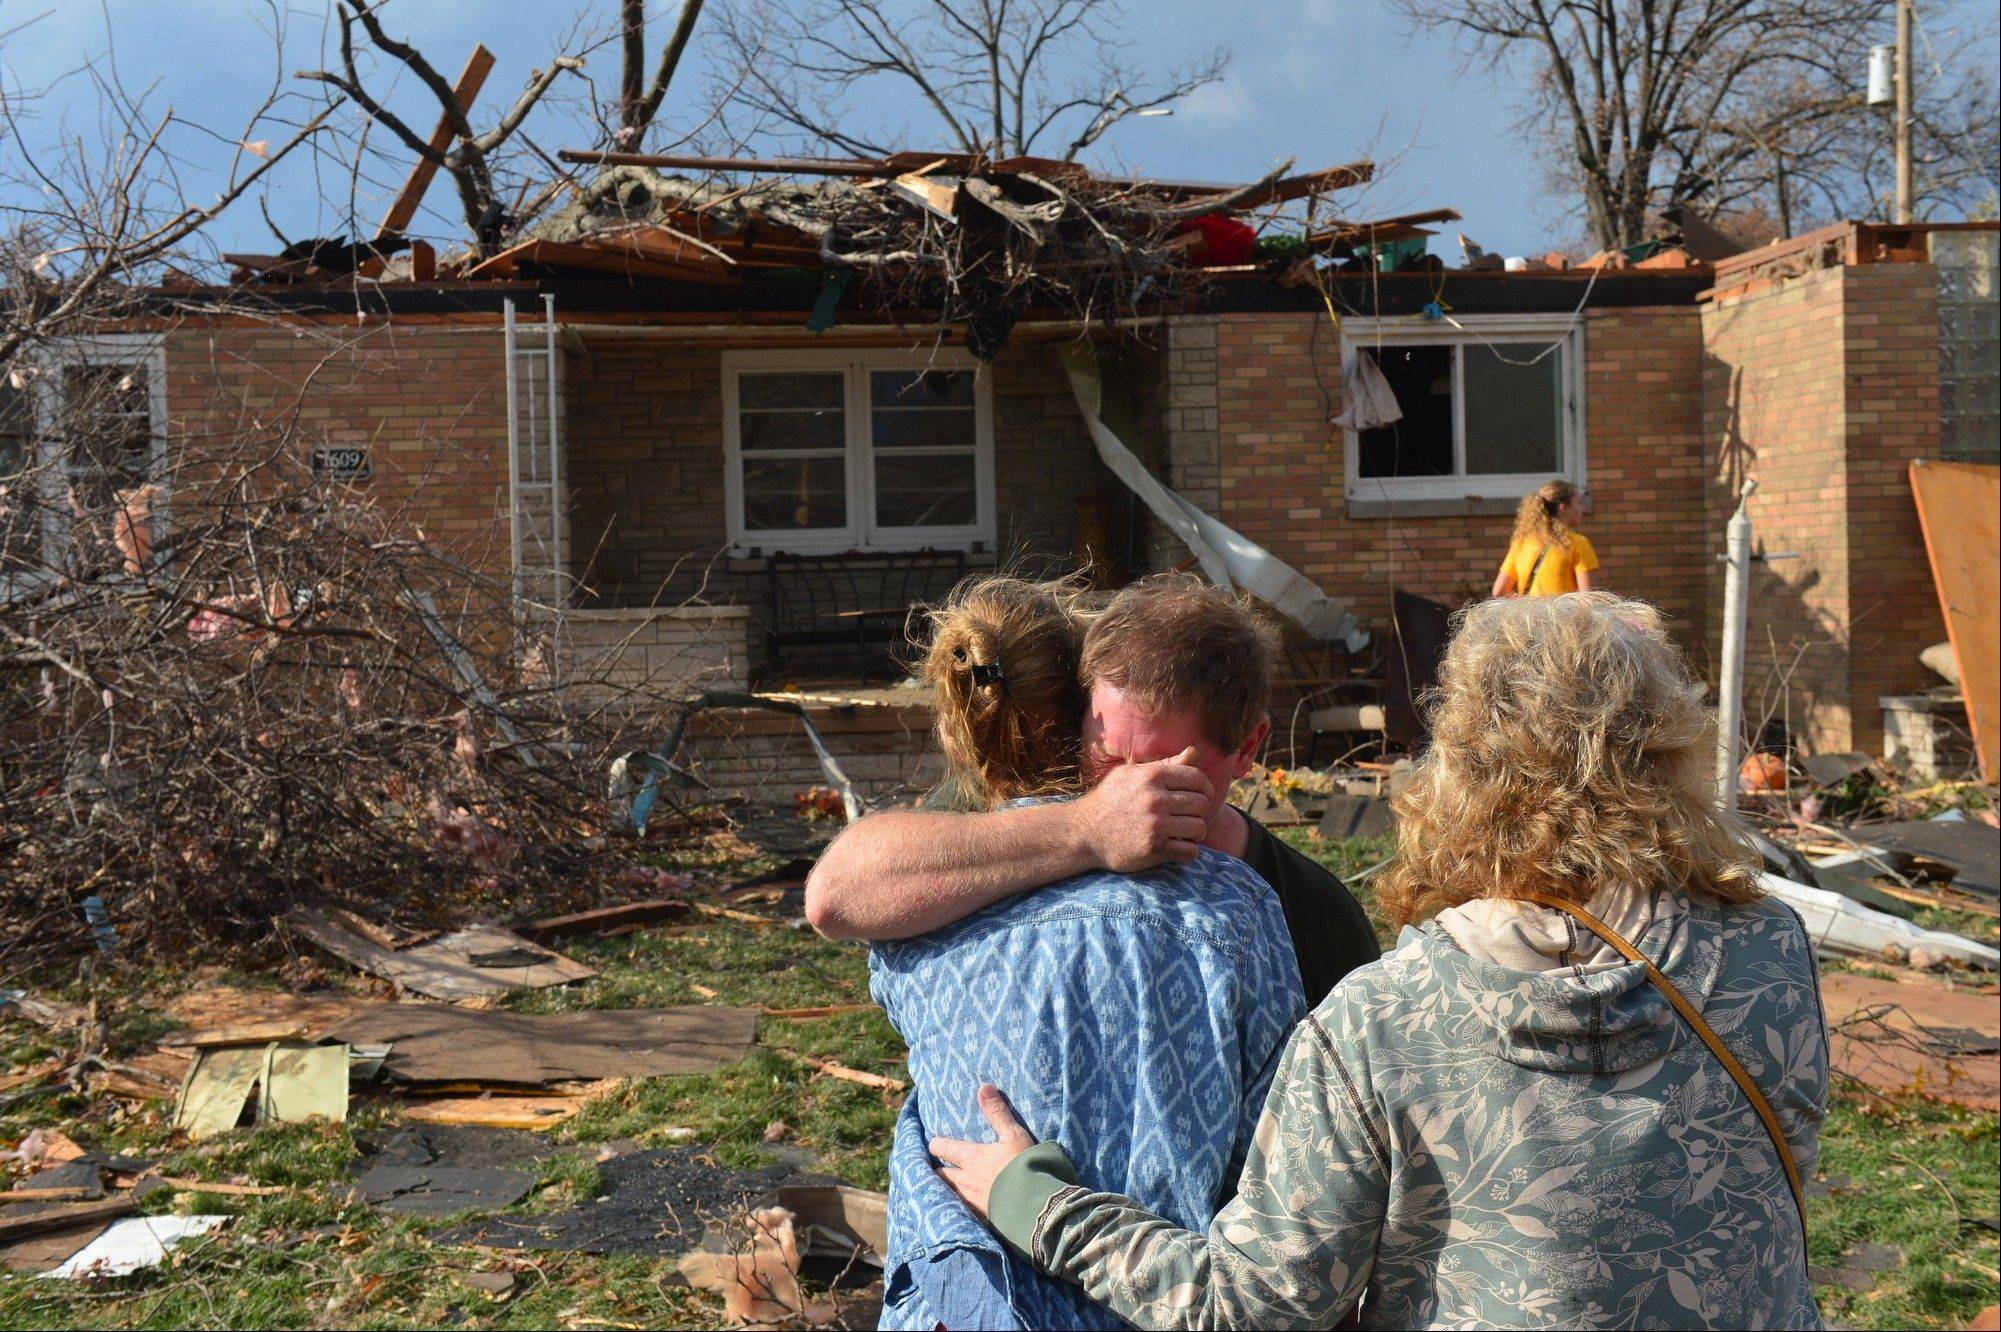 Ray Baughman embraces family shortly after his home was destroyed by a tornado that left a path of devastation through the north end of Pekin, Il., Sunday, Nov. 17, 2013. Intense thunderstorms and tornadoes swept across the Midwest on Sunday, causing extensive damage in several central Illinois communities while sending people to their basements for shelter.